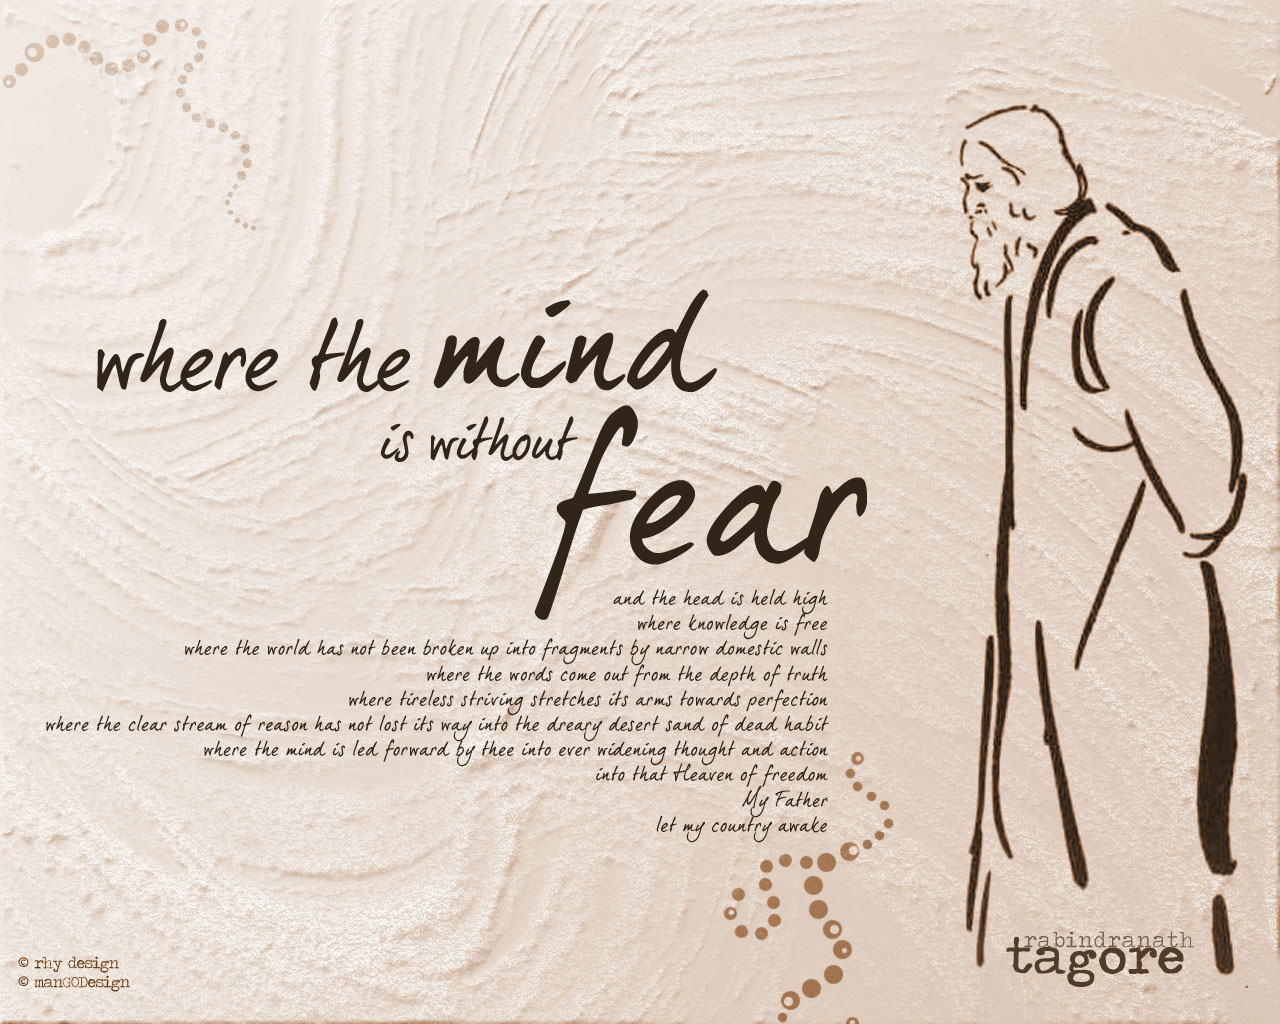 Where the mind is without fear